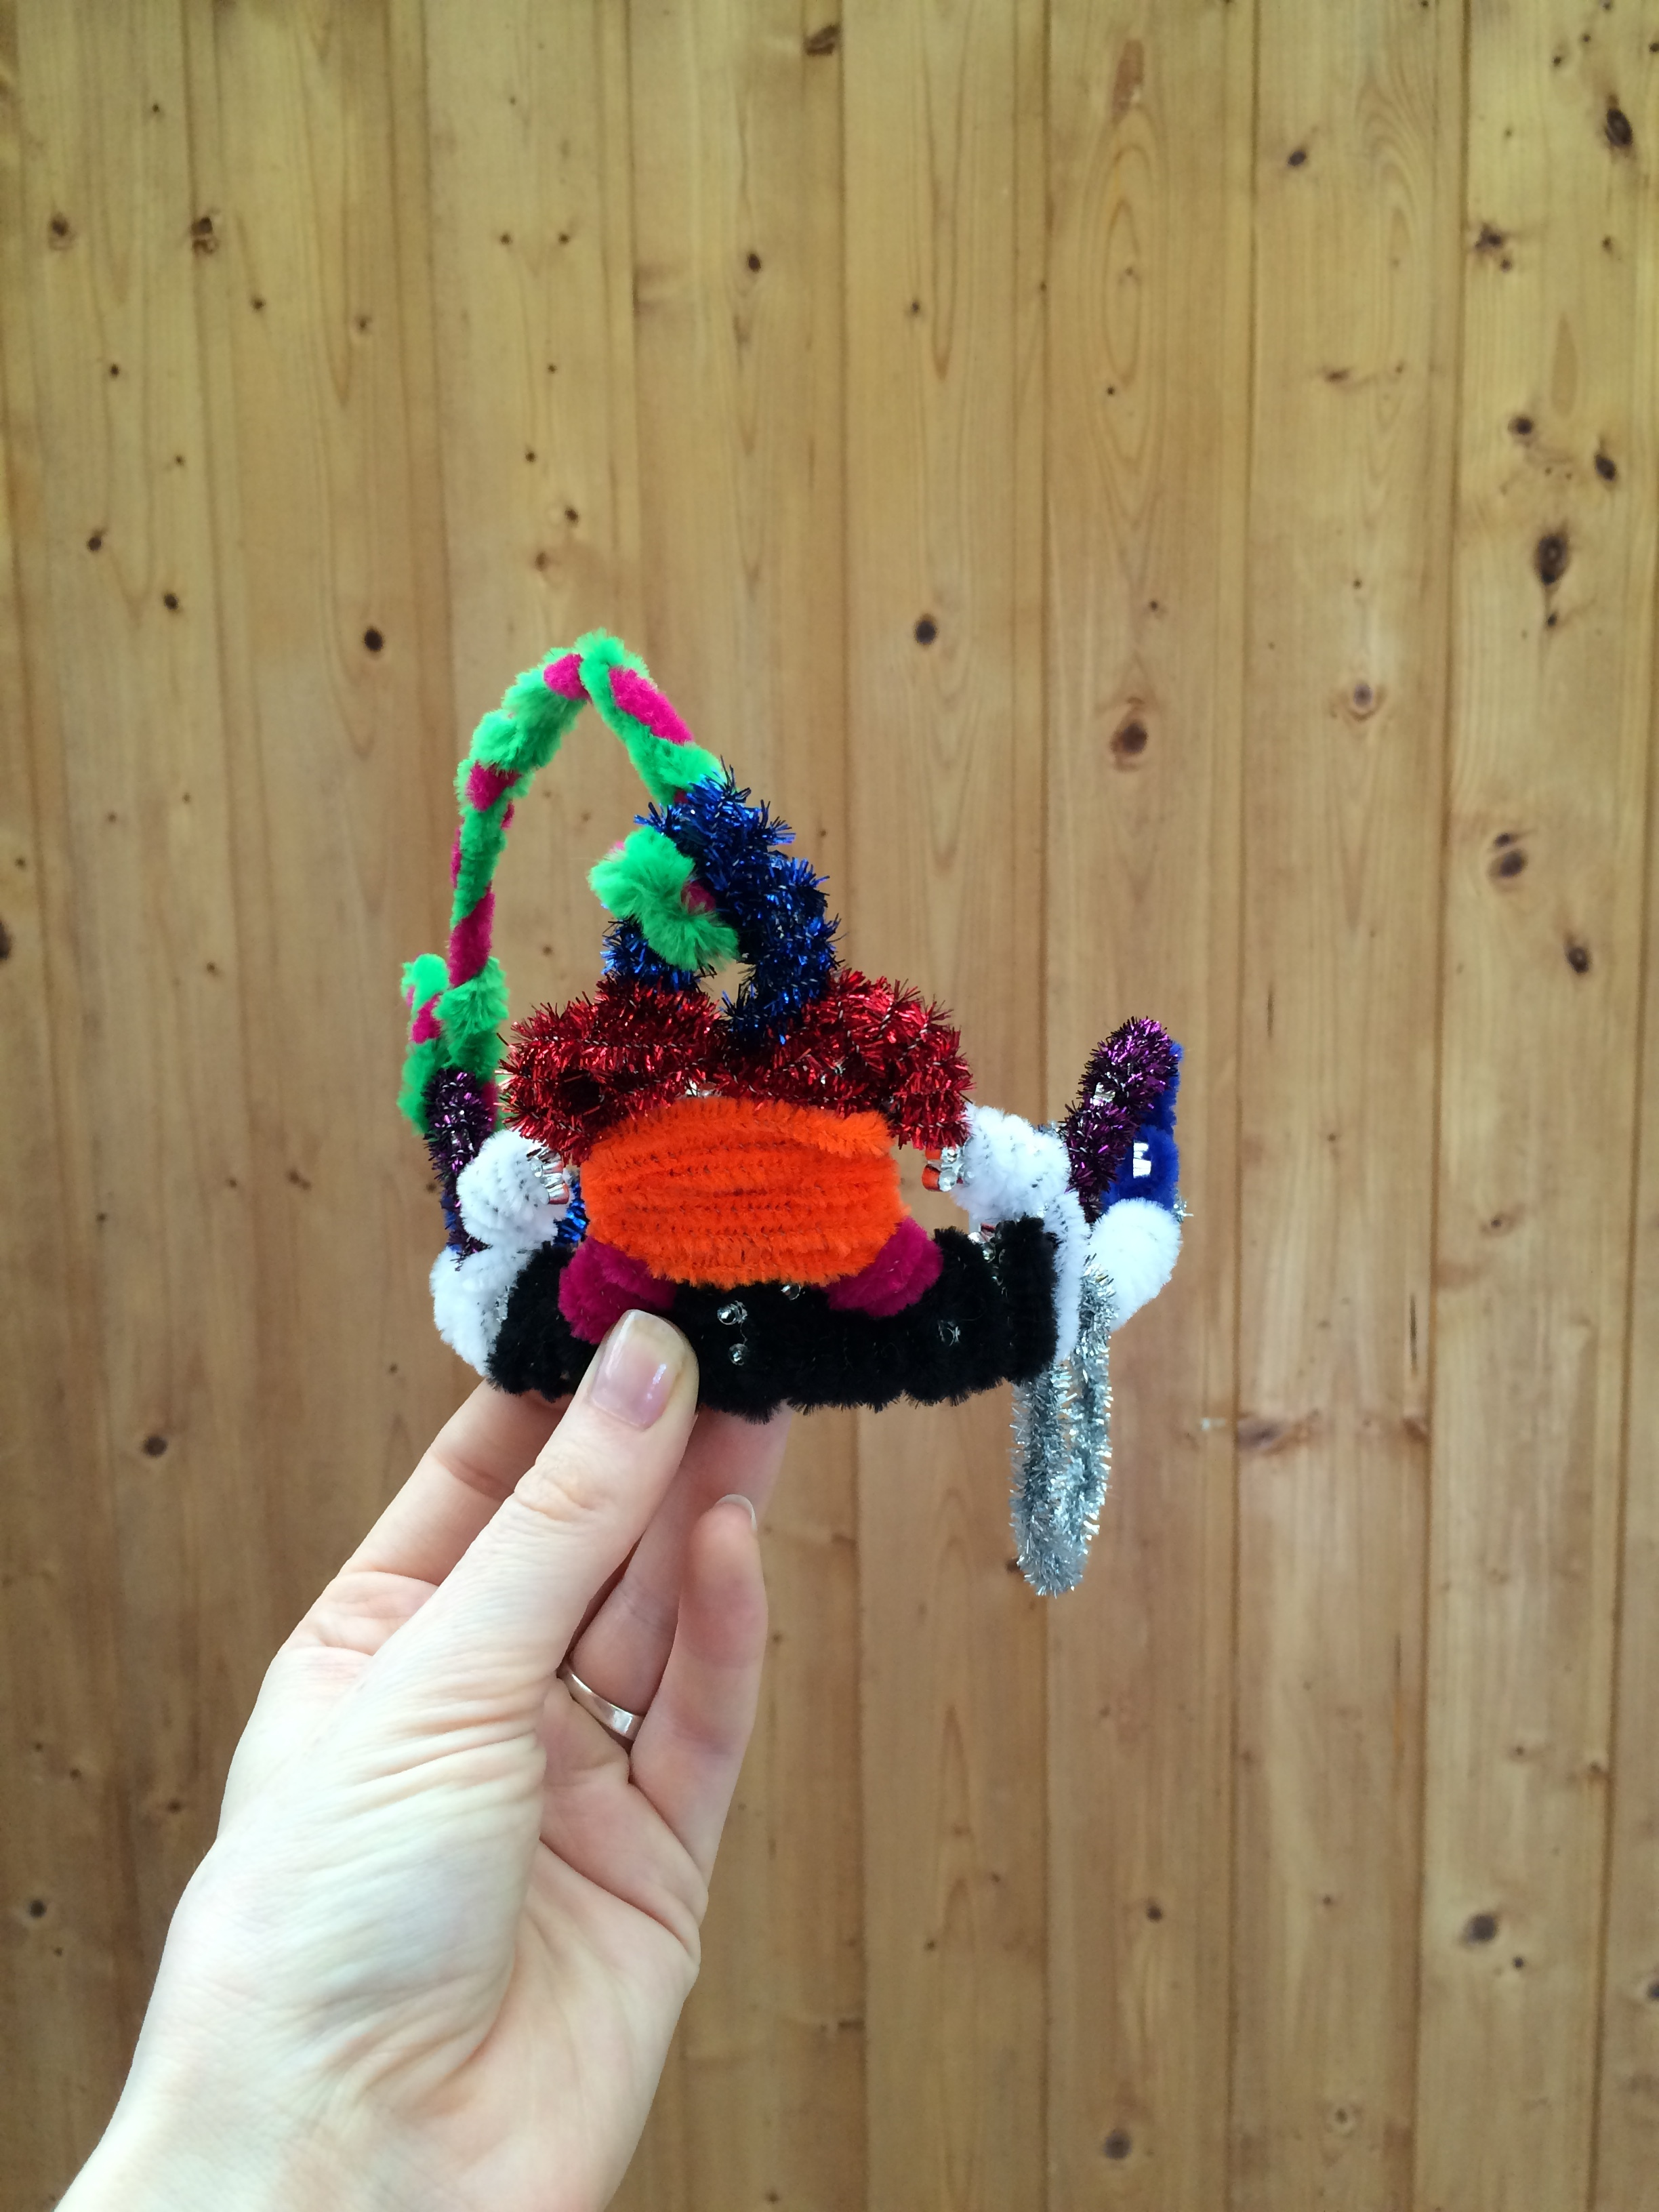 The base of the shell crown: who knew crafty pipe cleaners were so crafty.